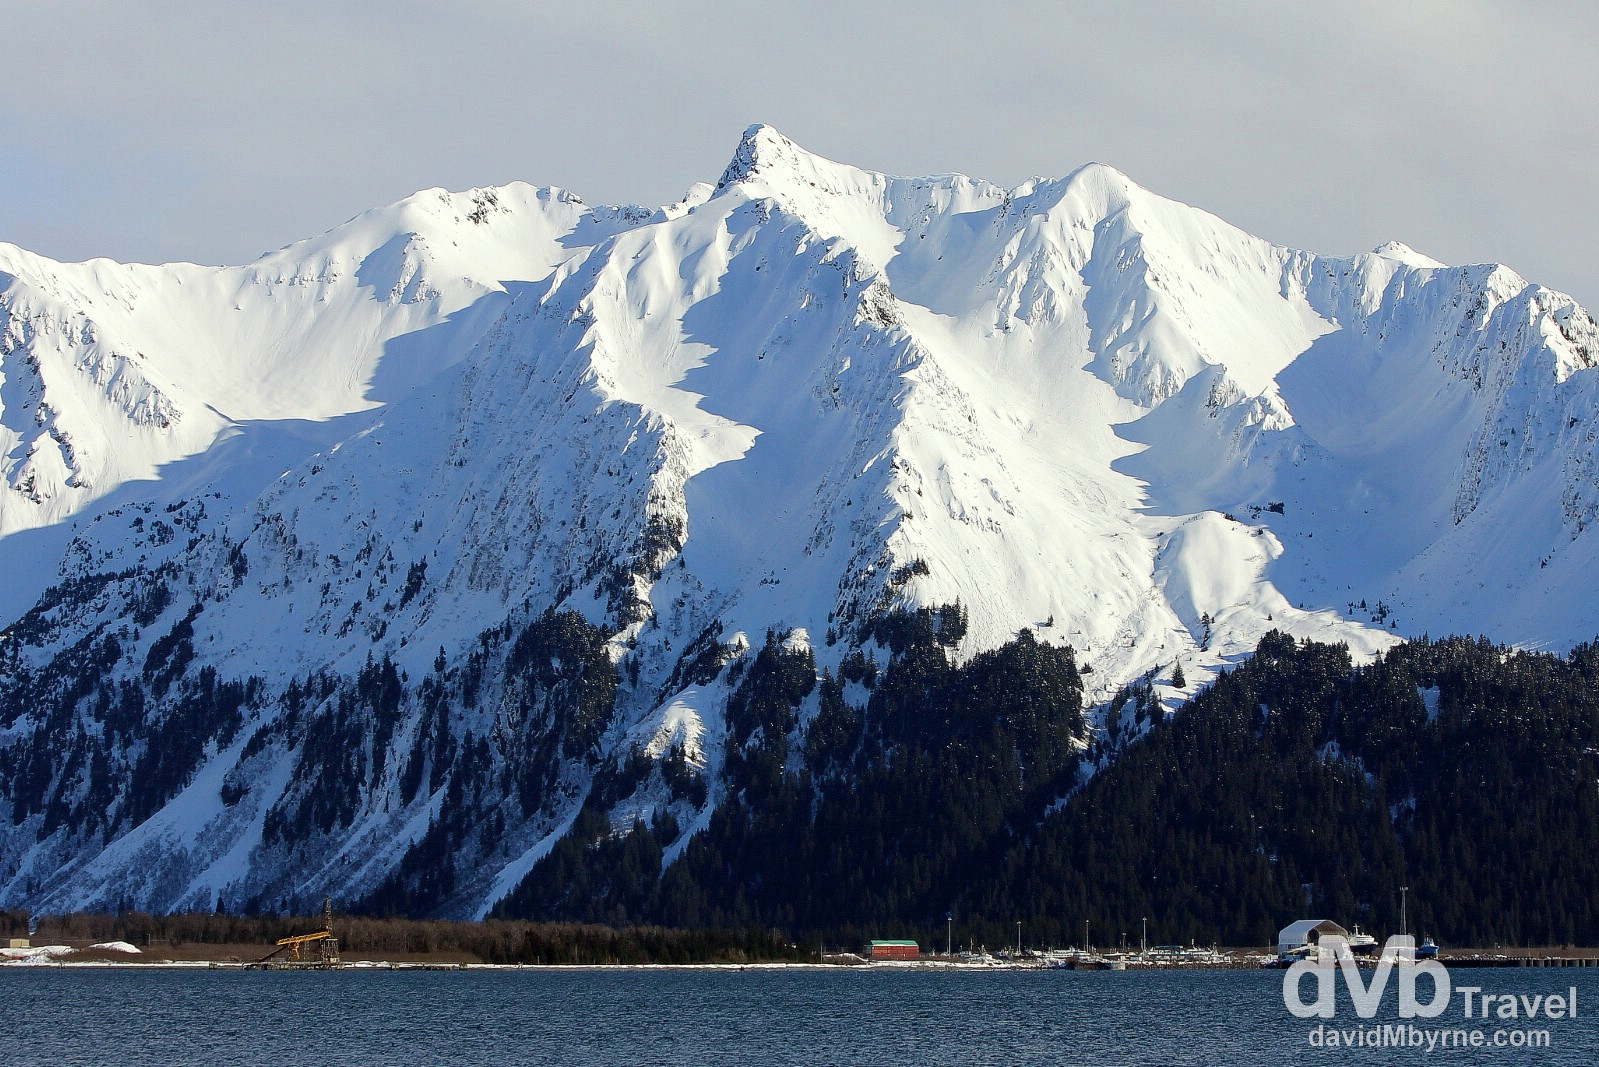 The peaks across Resurrection Bay from Lowell Point, Kenai Peninsula, Alaska, USA. March 13th 2013.